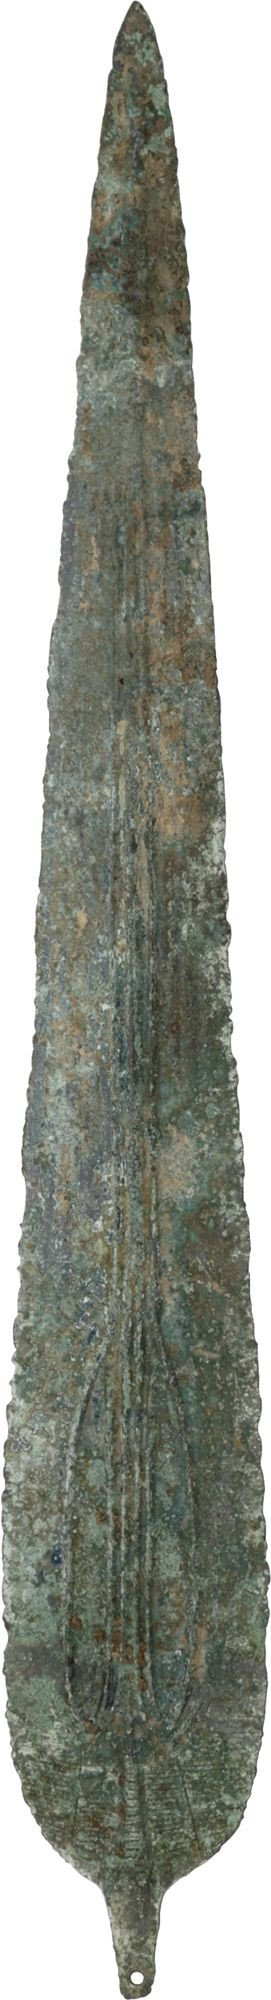 Very Large Luristan Bronze Spear C.1200-750 Bc - Product